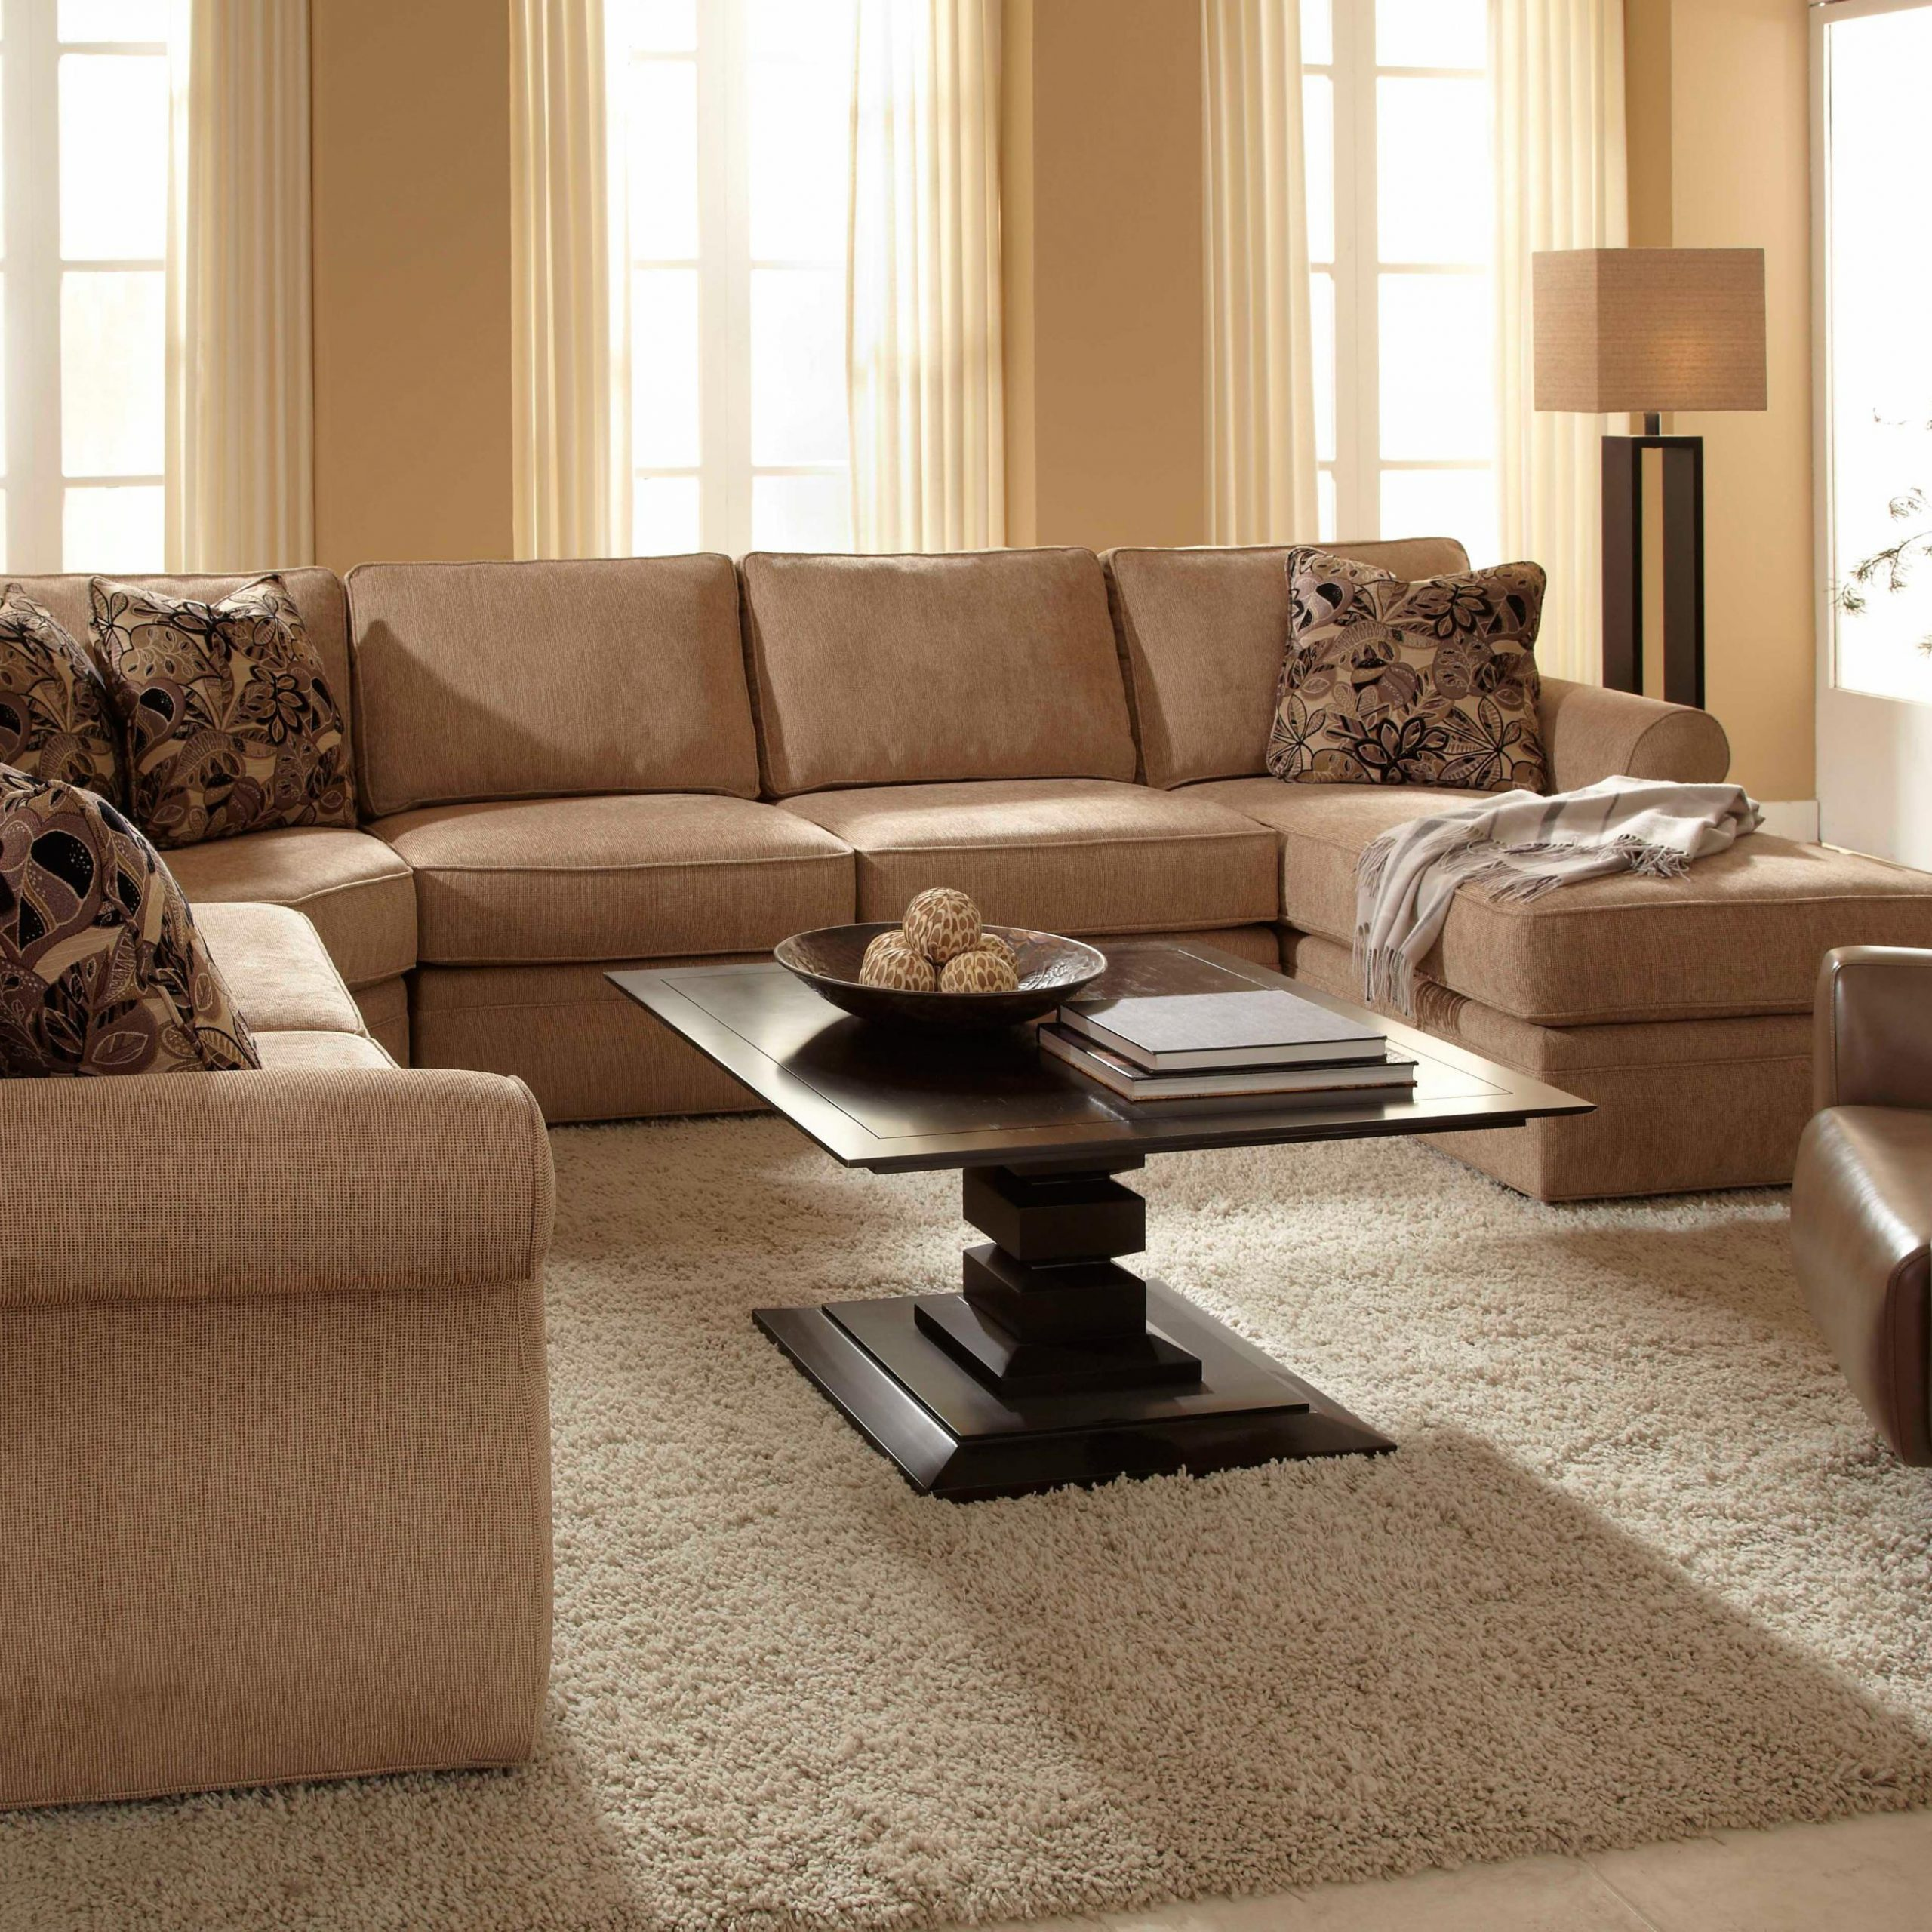 Broyhill Express Veronica Quick Ship Sectional Sofa Group With Regard To Broyhill Sectional Sofas (View 11 of 15)